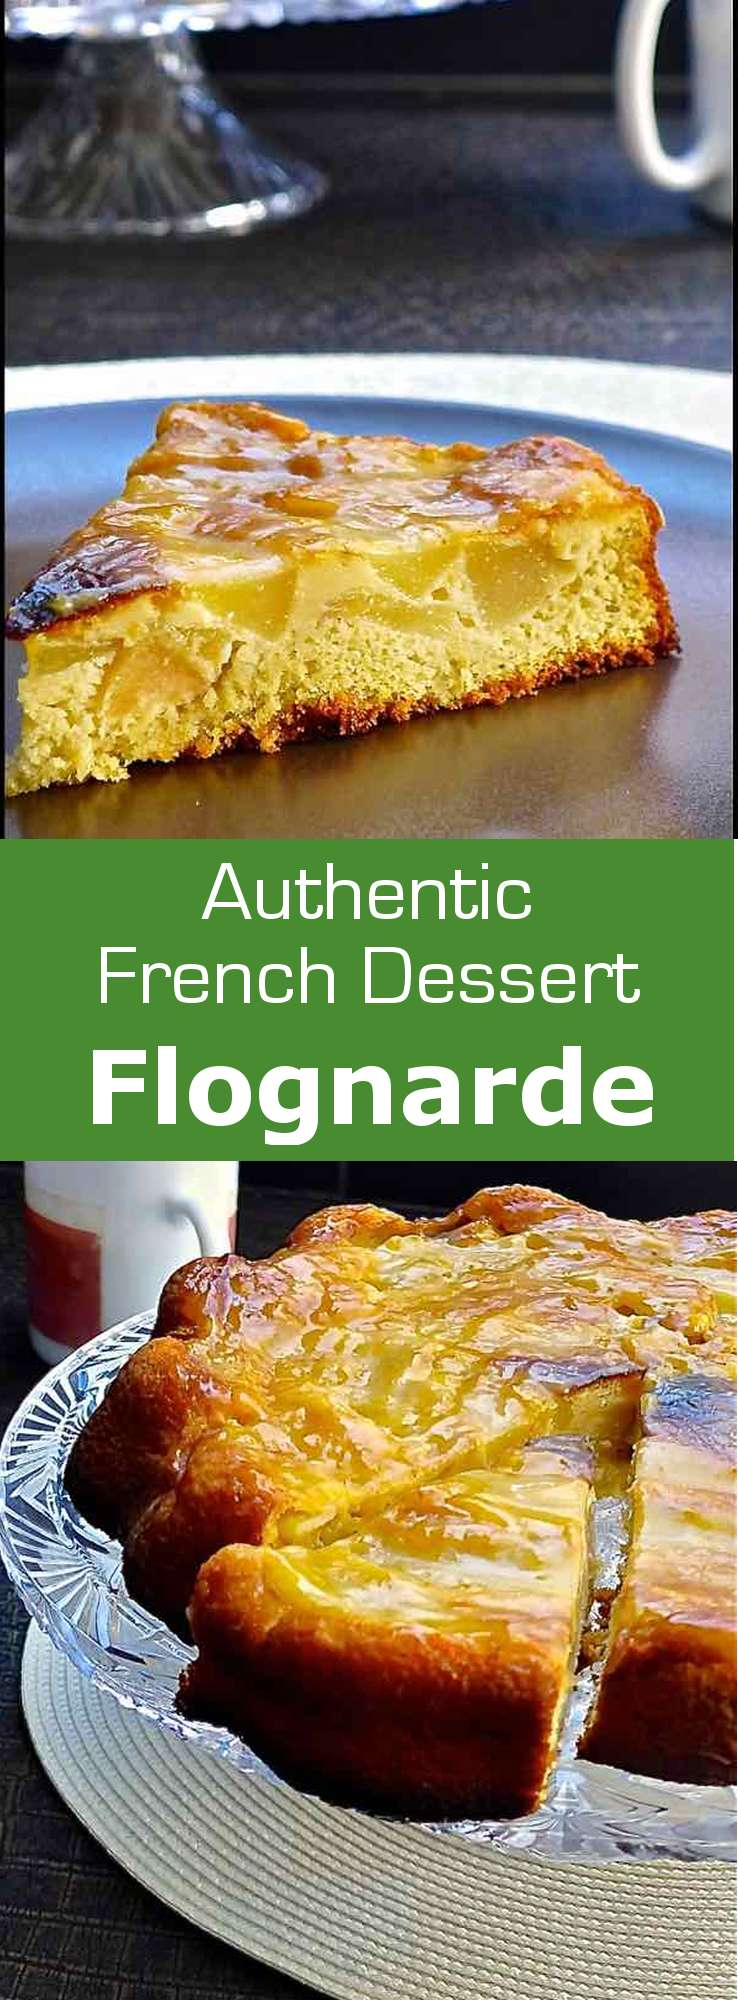 Flognarde is a variant of the famous French clafoutis made with black cherries from Limousin and with apples and pears in the winter. #French #dessert #196flavors